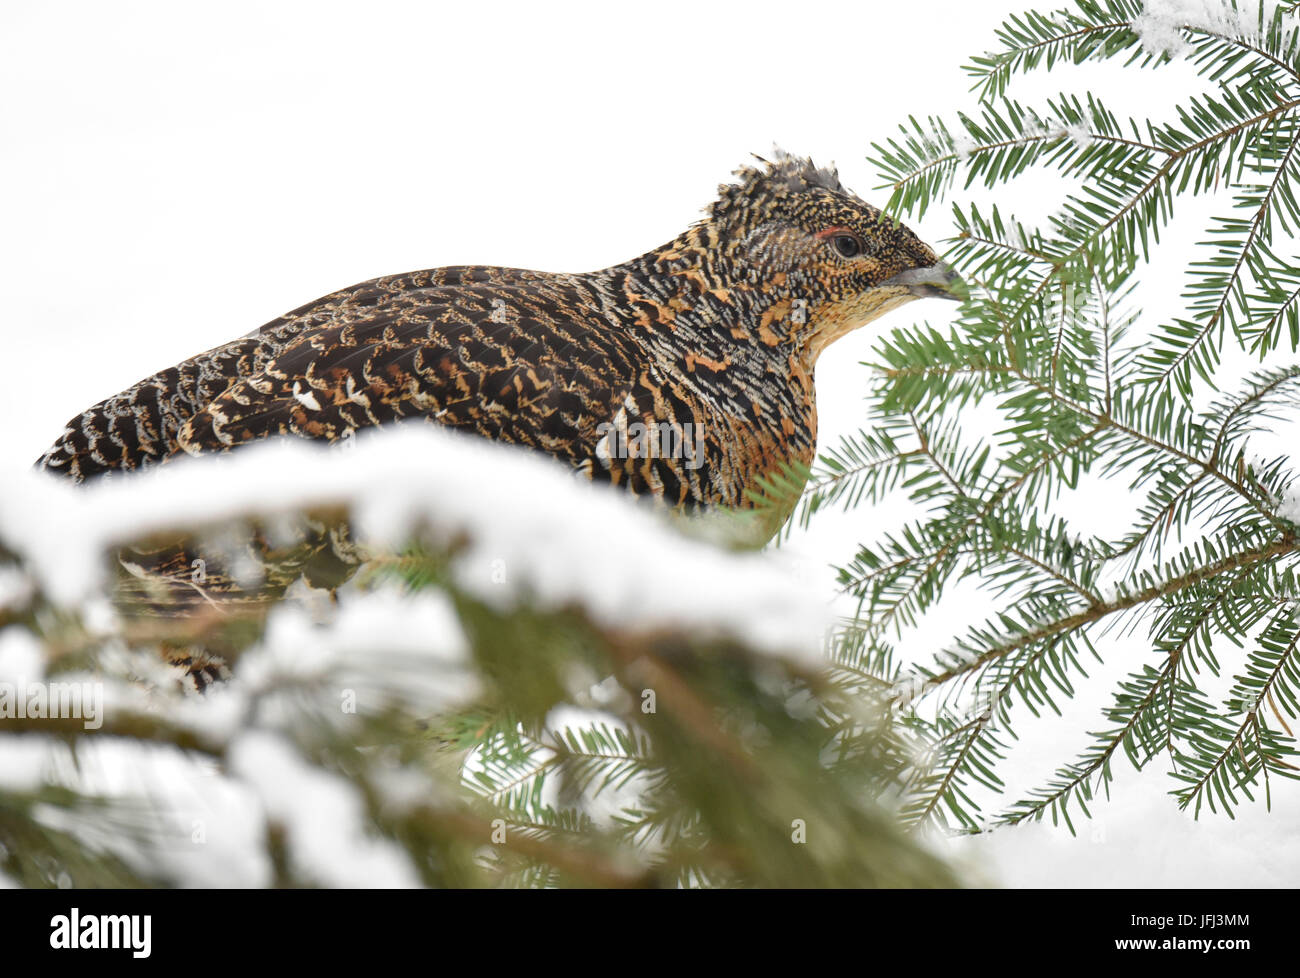 Capercaillie, wood grouse, mating season Stock Photo